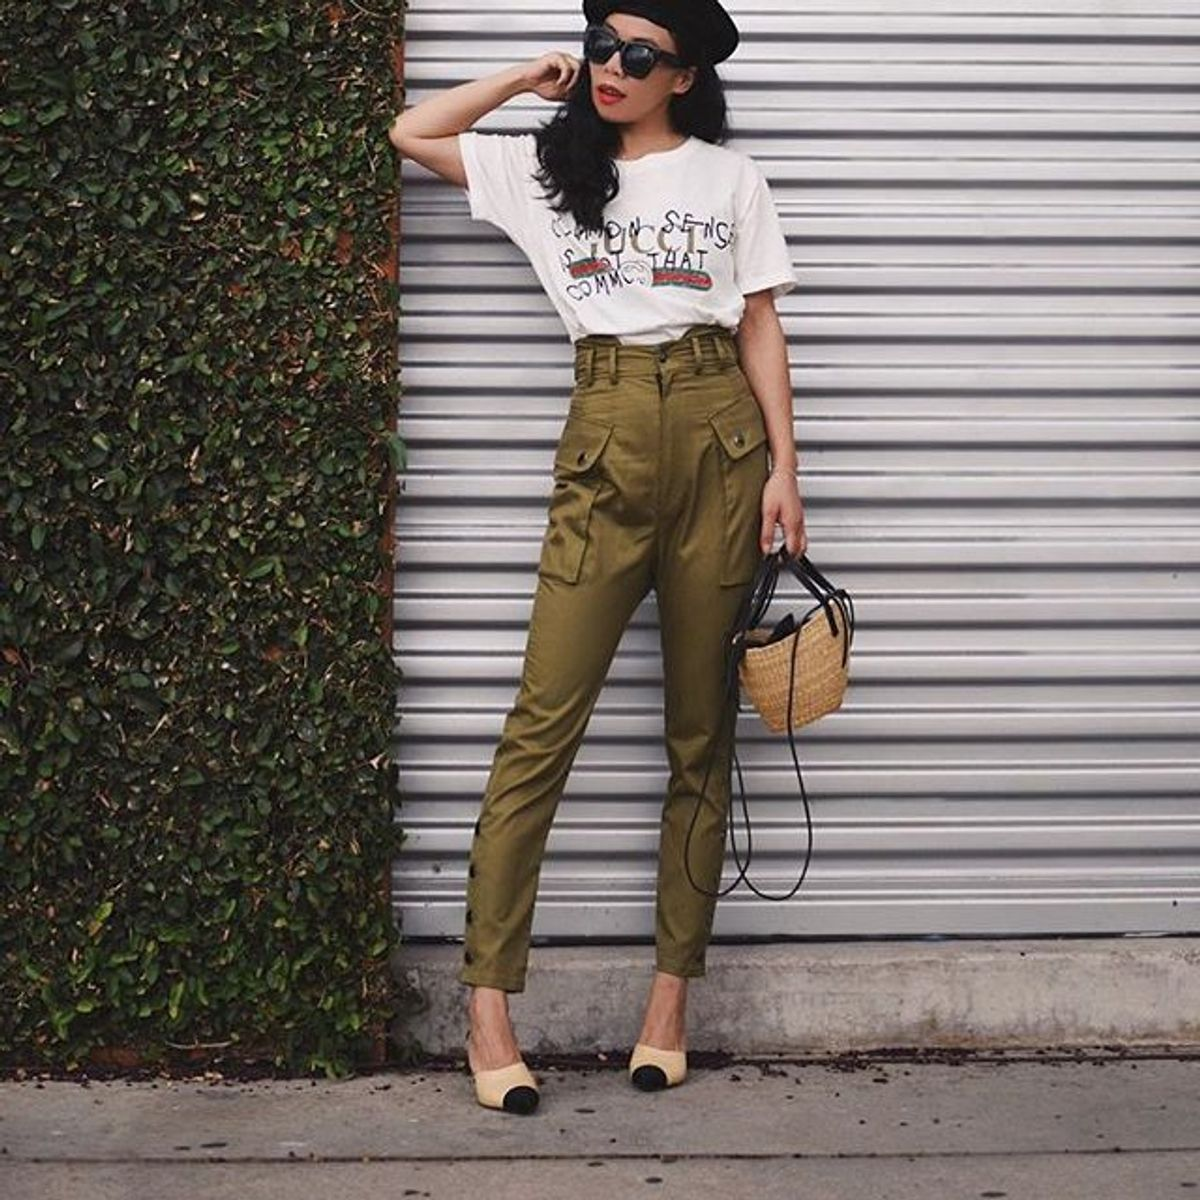 29 of Todays Delightful  OOTD Photos for Girls  Looking to up  Their Fashion Game  ...